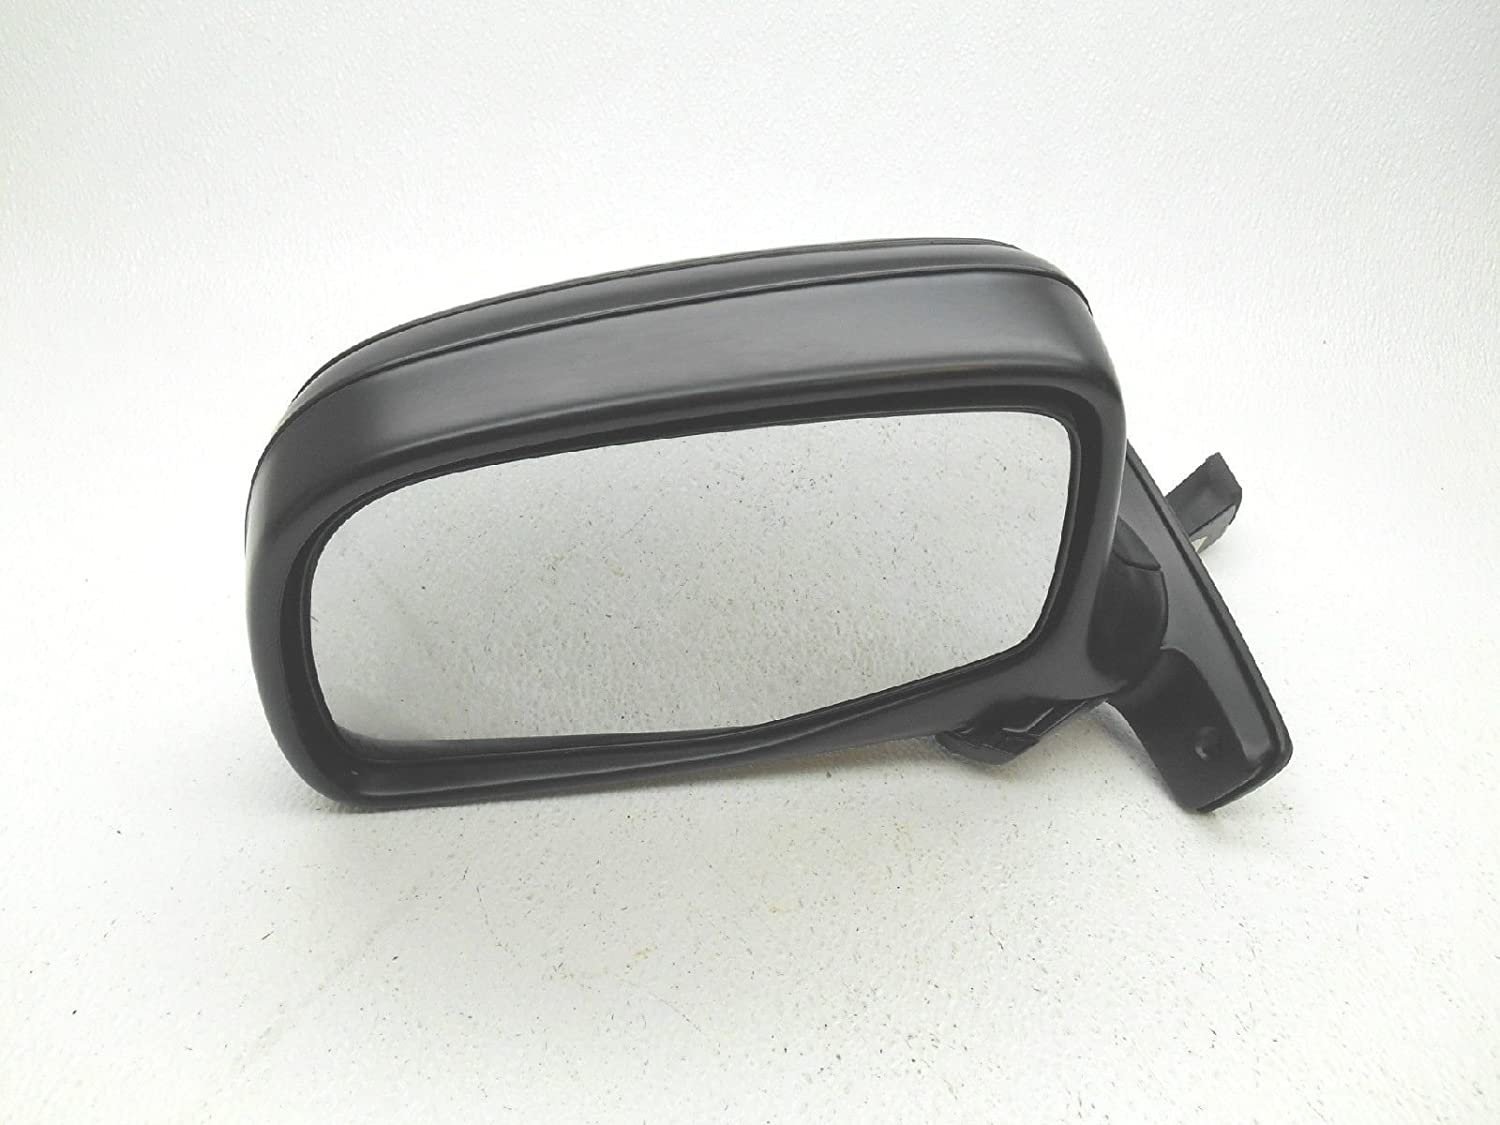 NEW Textured Black Front Drivers Left LH Mirror for 2004-2008 Ford F150 Pickup